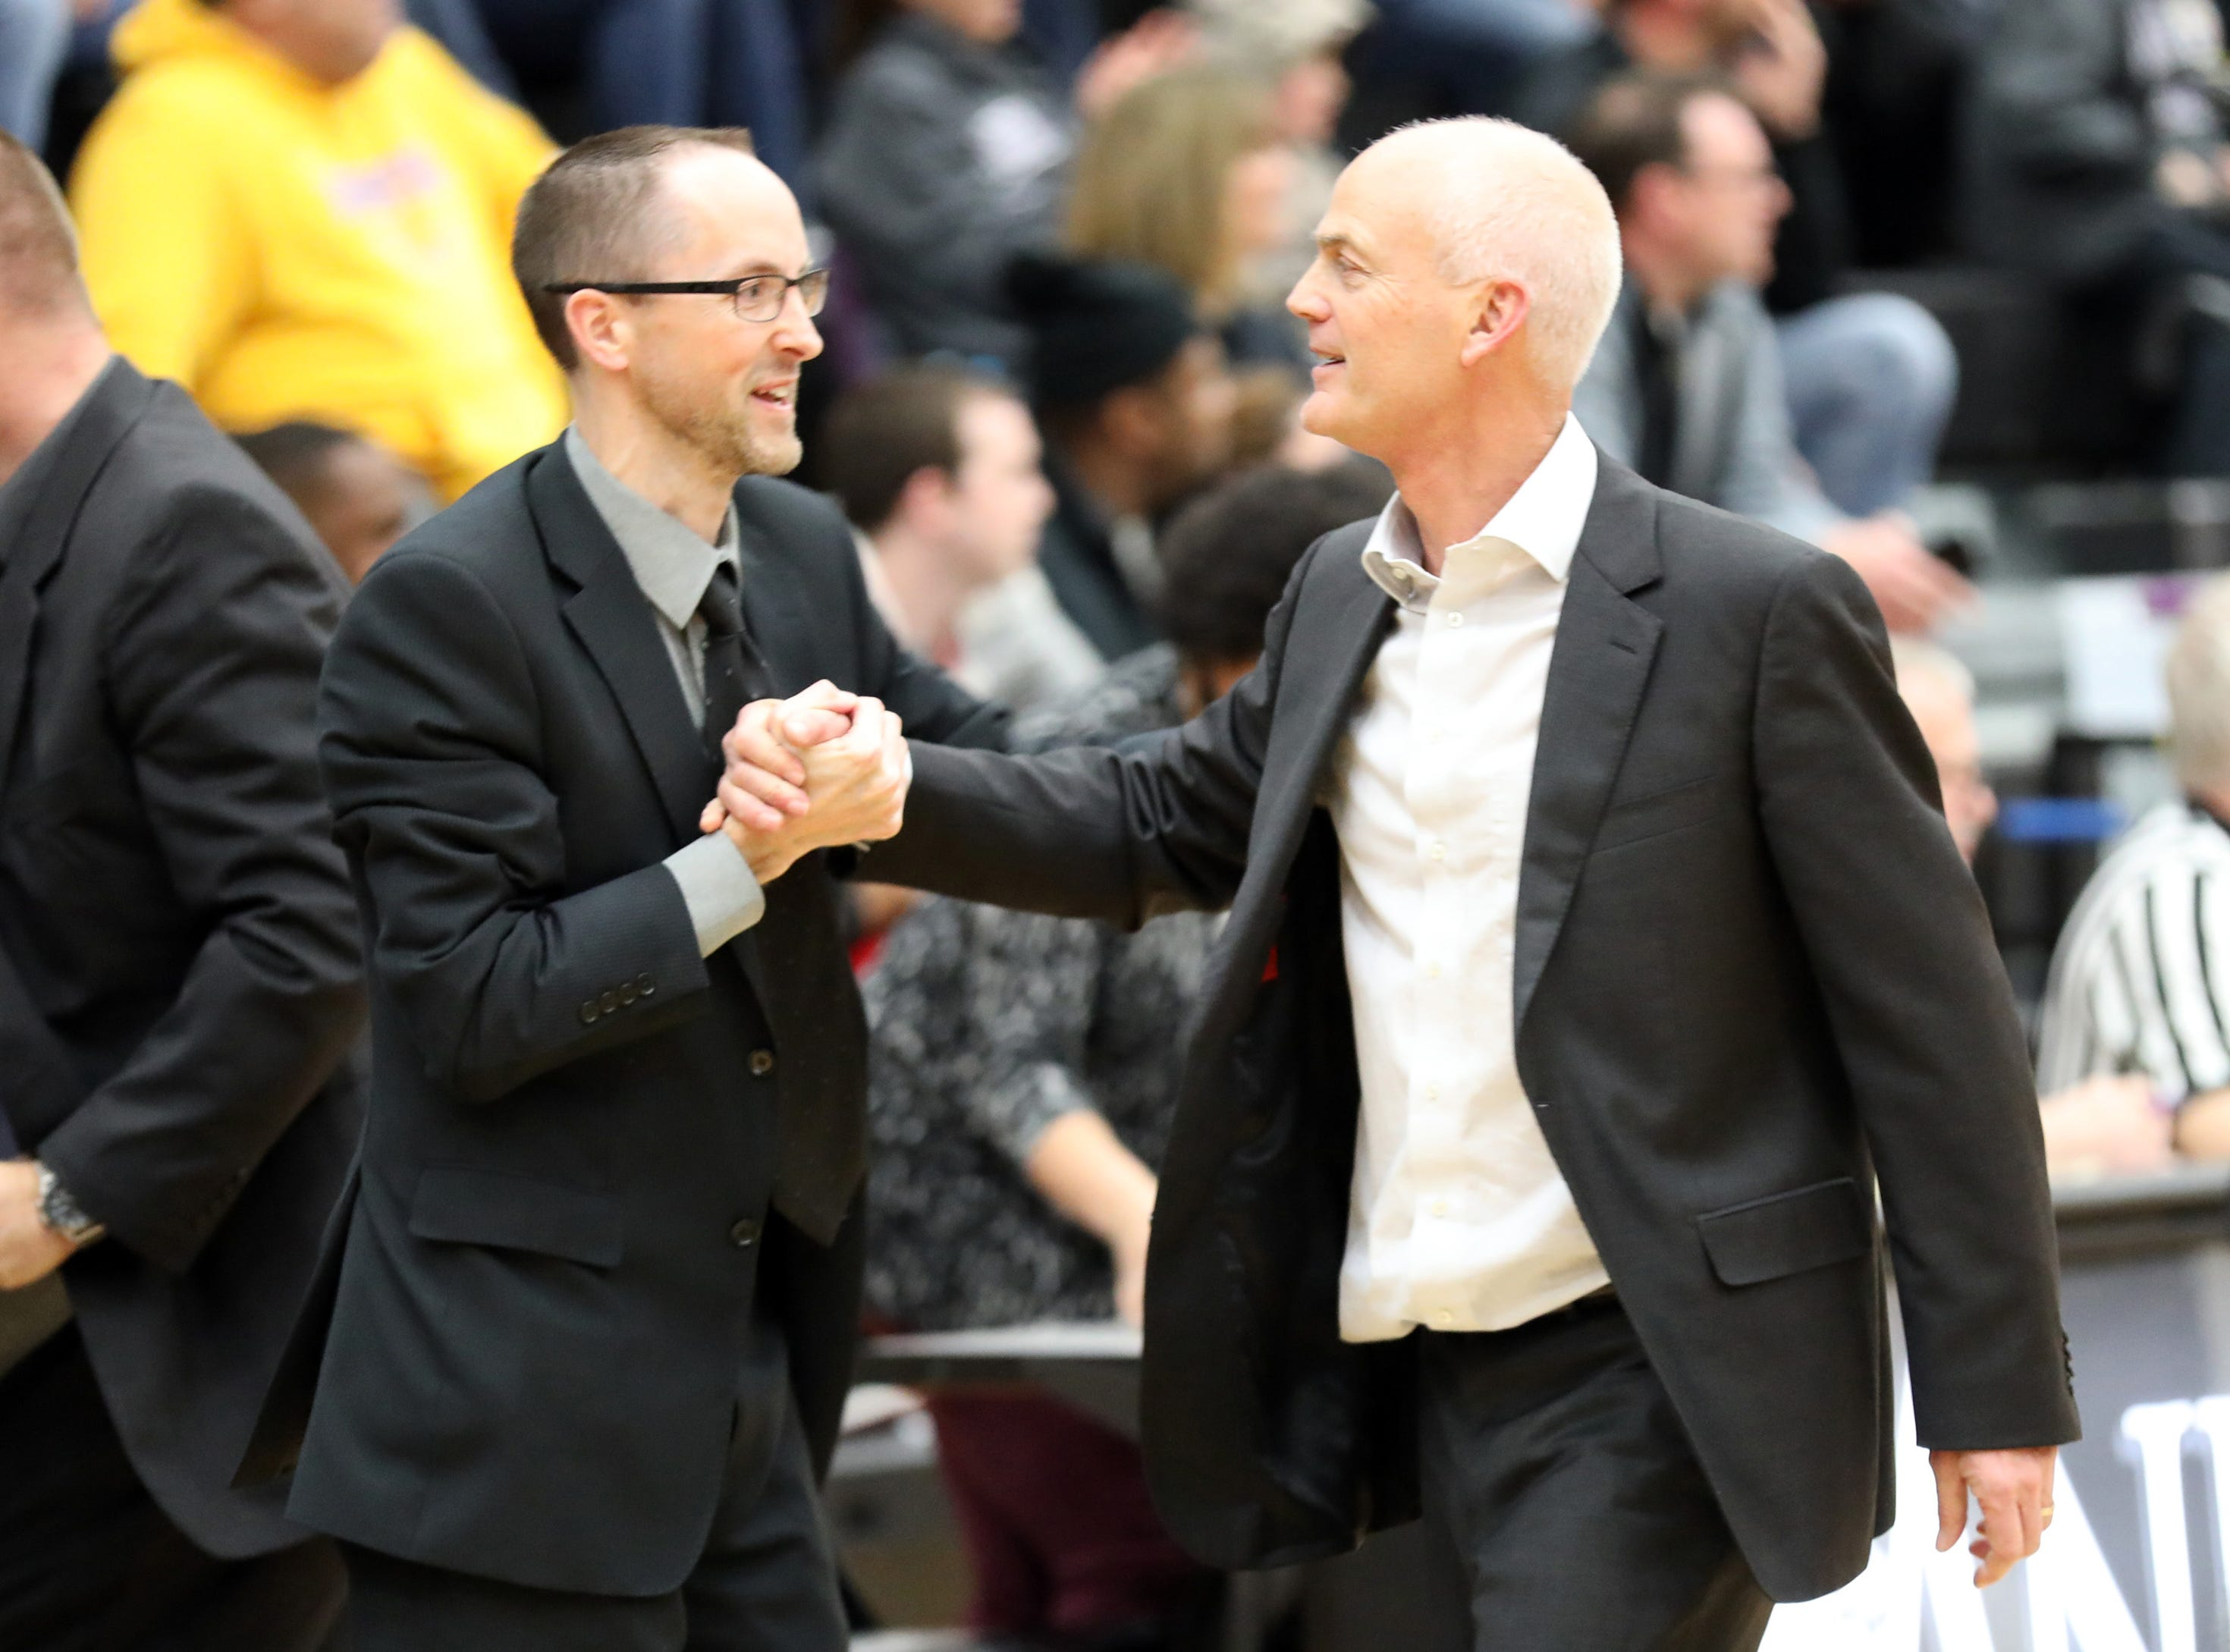 Ankeny Centennial head coach Scott DeJong is congratulated for the last second victory as the Johnston Dragons compete against the Ankeny Centennial Jaguars in high school girls basketball on Friday, Jan. 4, 2019 at Ankeny Centennial High School. Ankeny won 50 to 48.